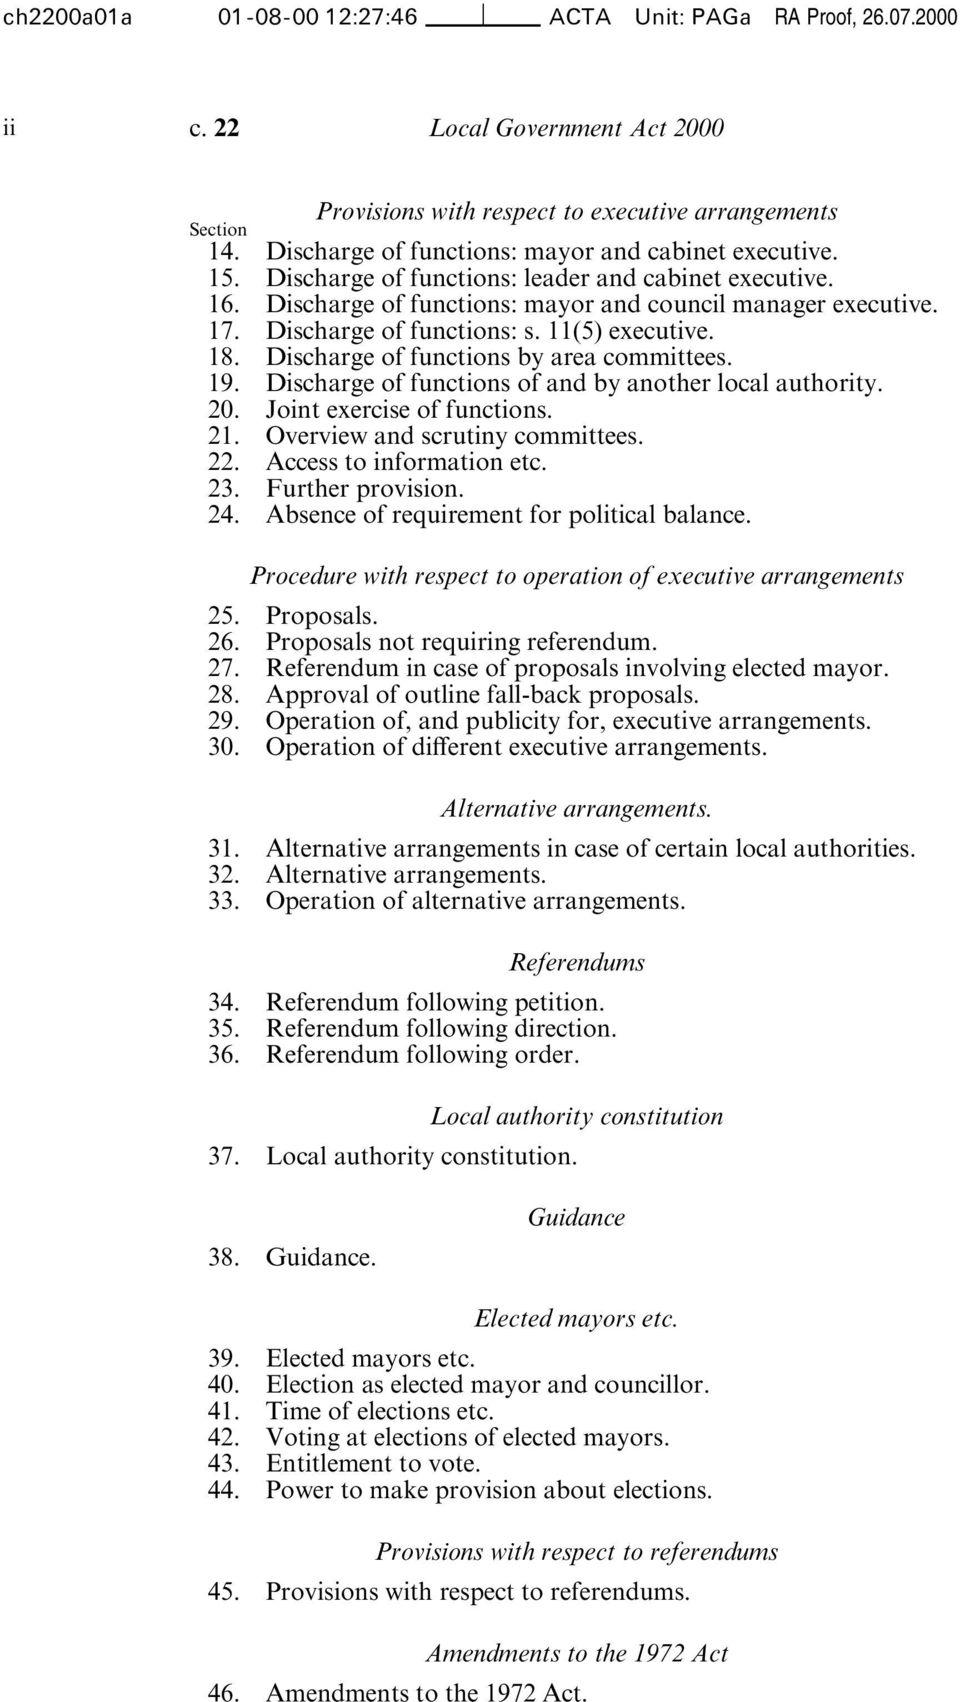 Discharge of functions: s. 11(5) executive. 18. Discharge of functions by area committees. 19. Discharge of functions of and by another local authority. 20. Joint exercise of functions. 21.